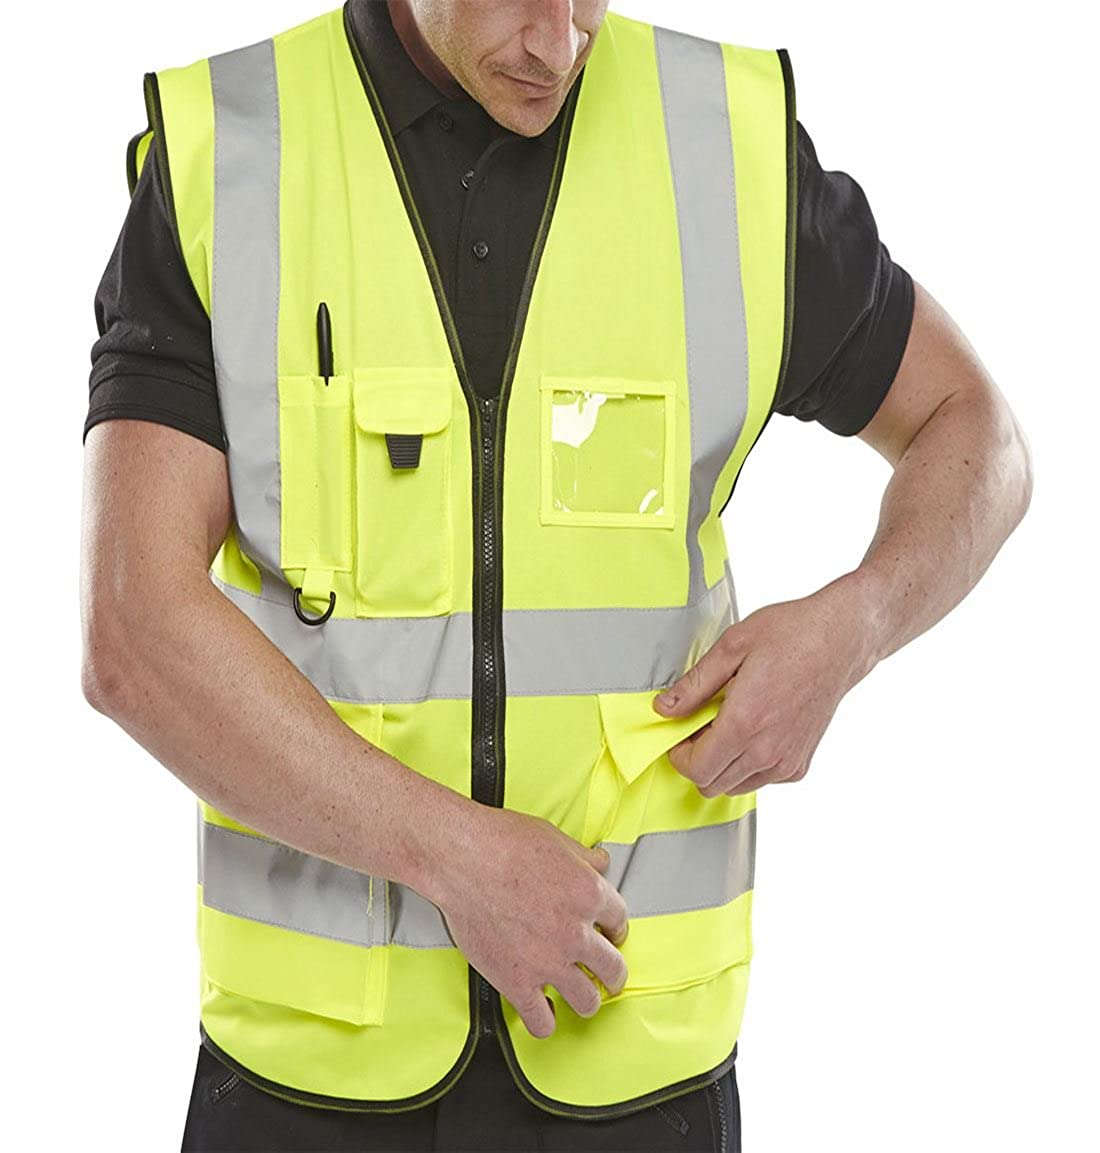 Islander Fashions Adult High Visibility Waistcoat Mens Sports Ropa de Trabajo Safety Reflective Vest M / 5XL